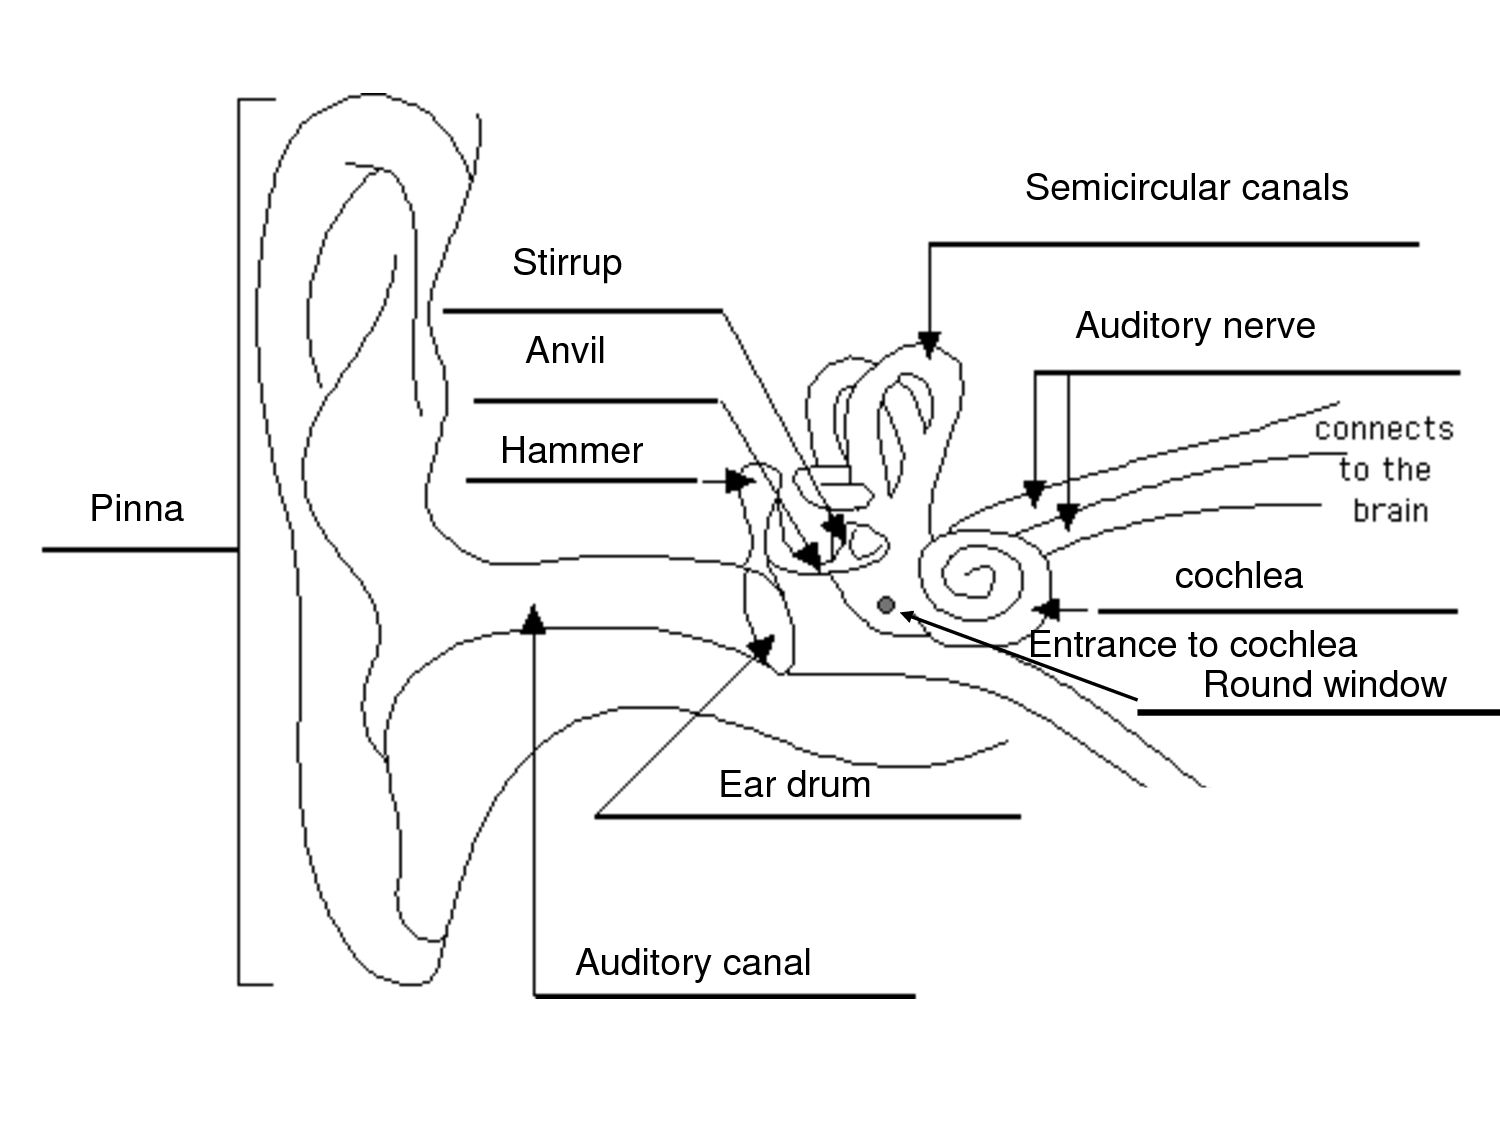 medium resolution of image result for ear structure without label sound topic hairs ear diagram labeled image result for